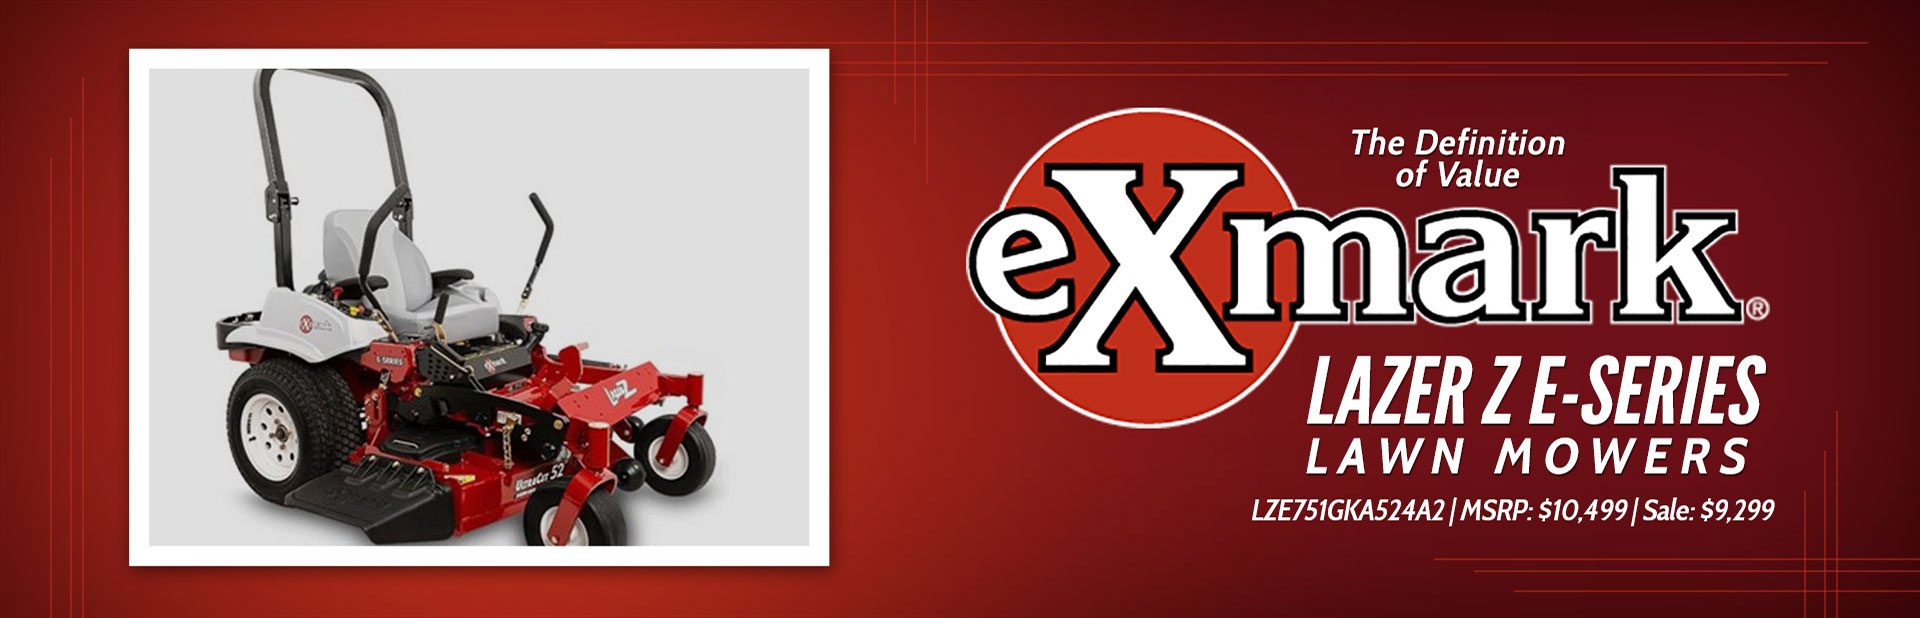 Exmark Lazer Z E-Series Lawn Mowers: Click here to view the models.